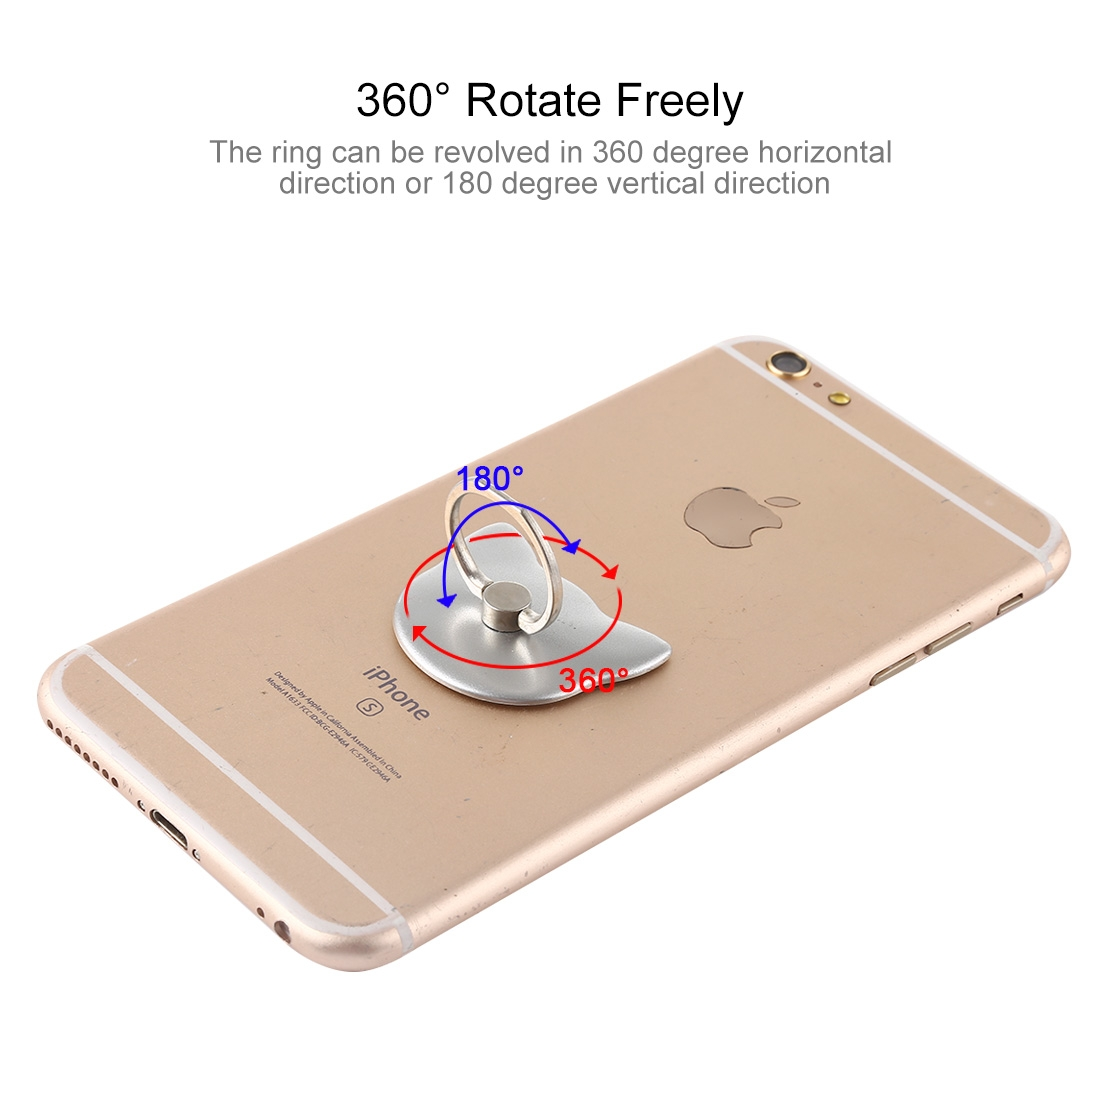 100 PCS Universal Cat Shape 360 Degree Rotatable Ring Stand Holder for Almost All Smartphones (Silver)